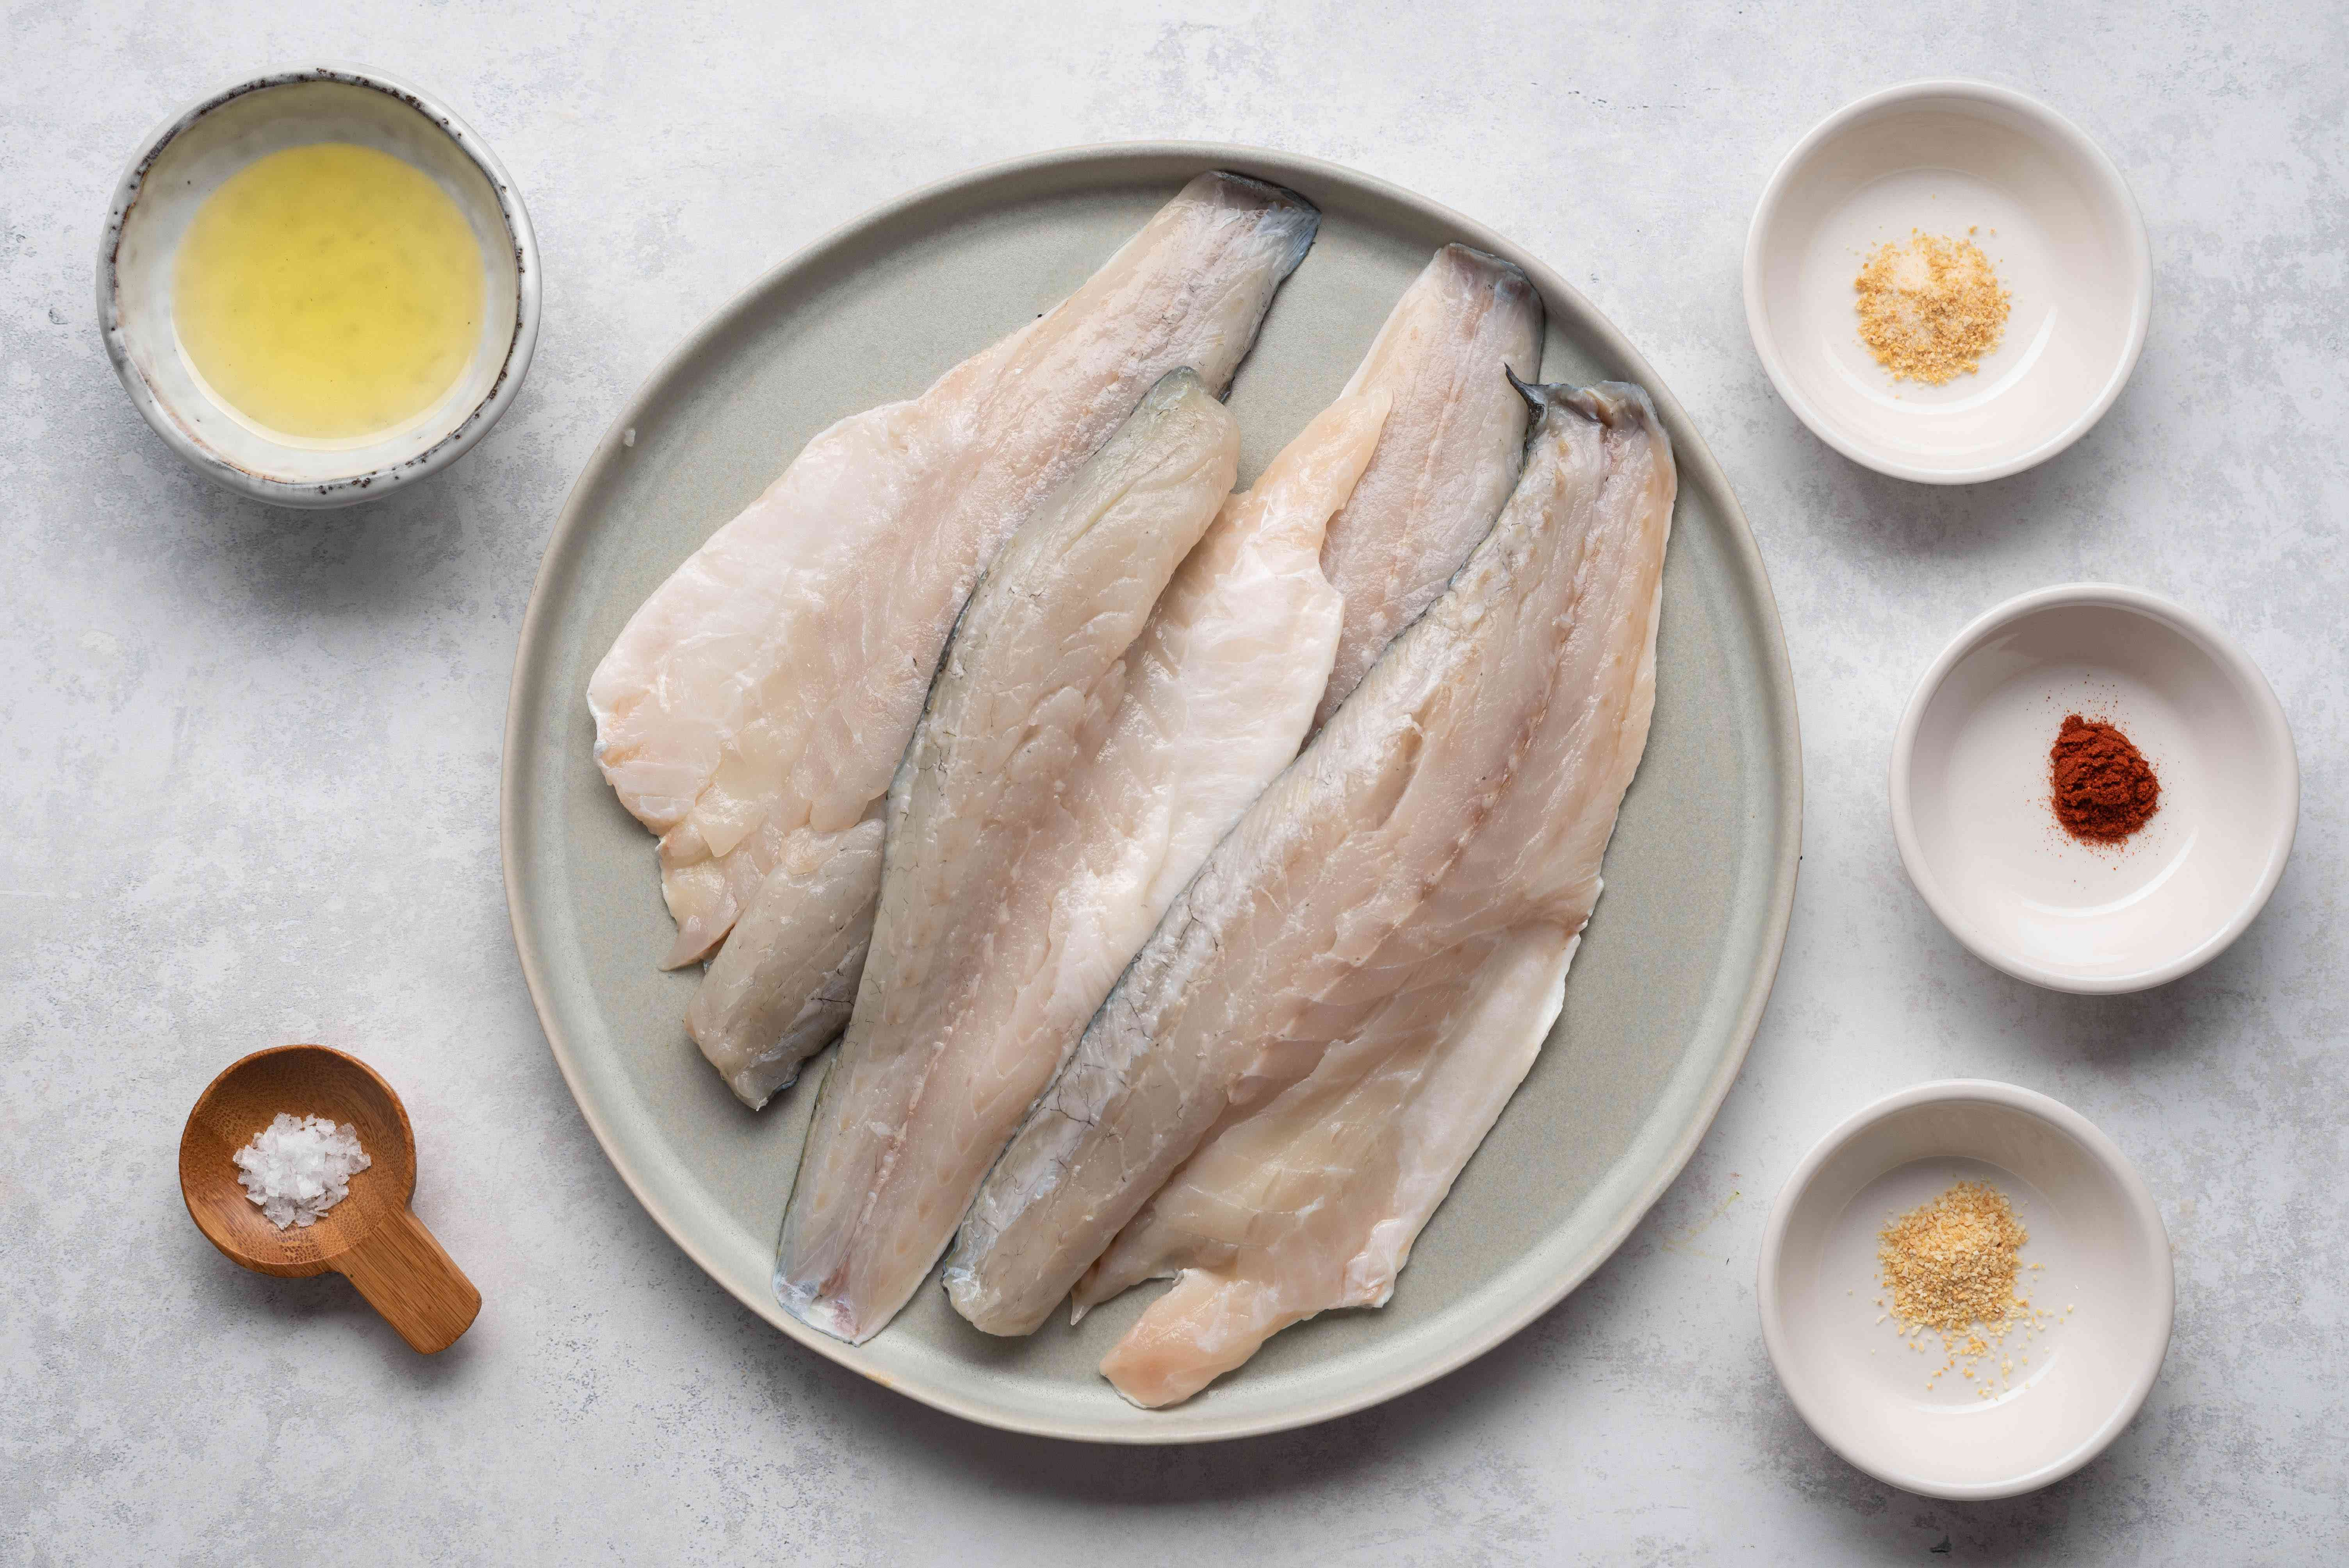 Grilled Sea Bass With Garlic Butter ingredients